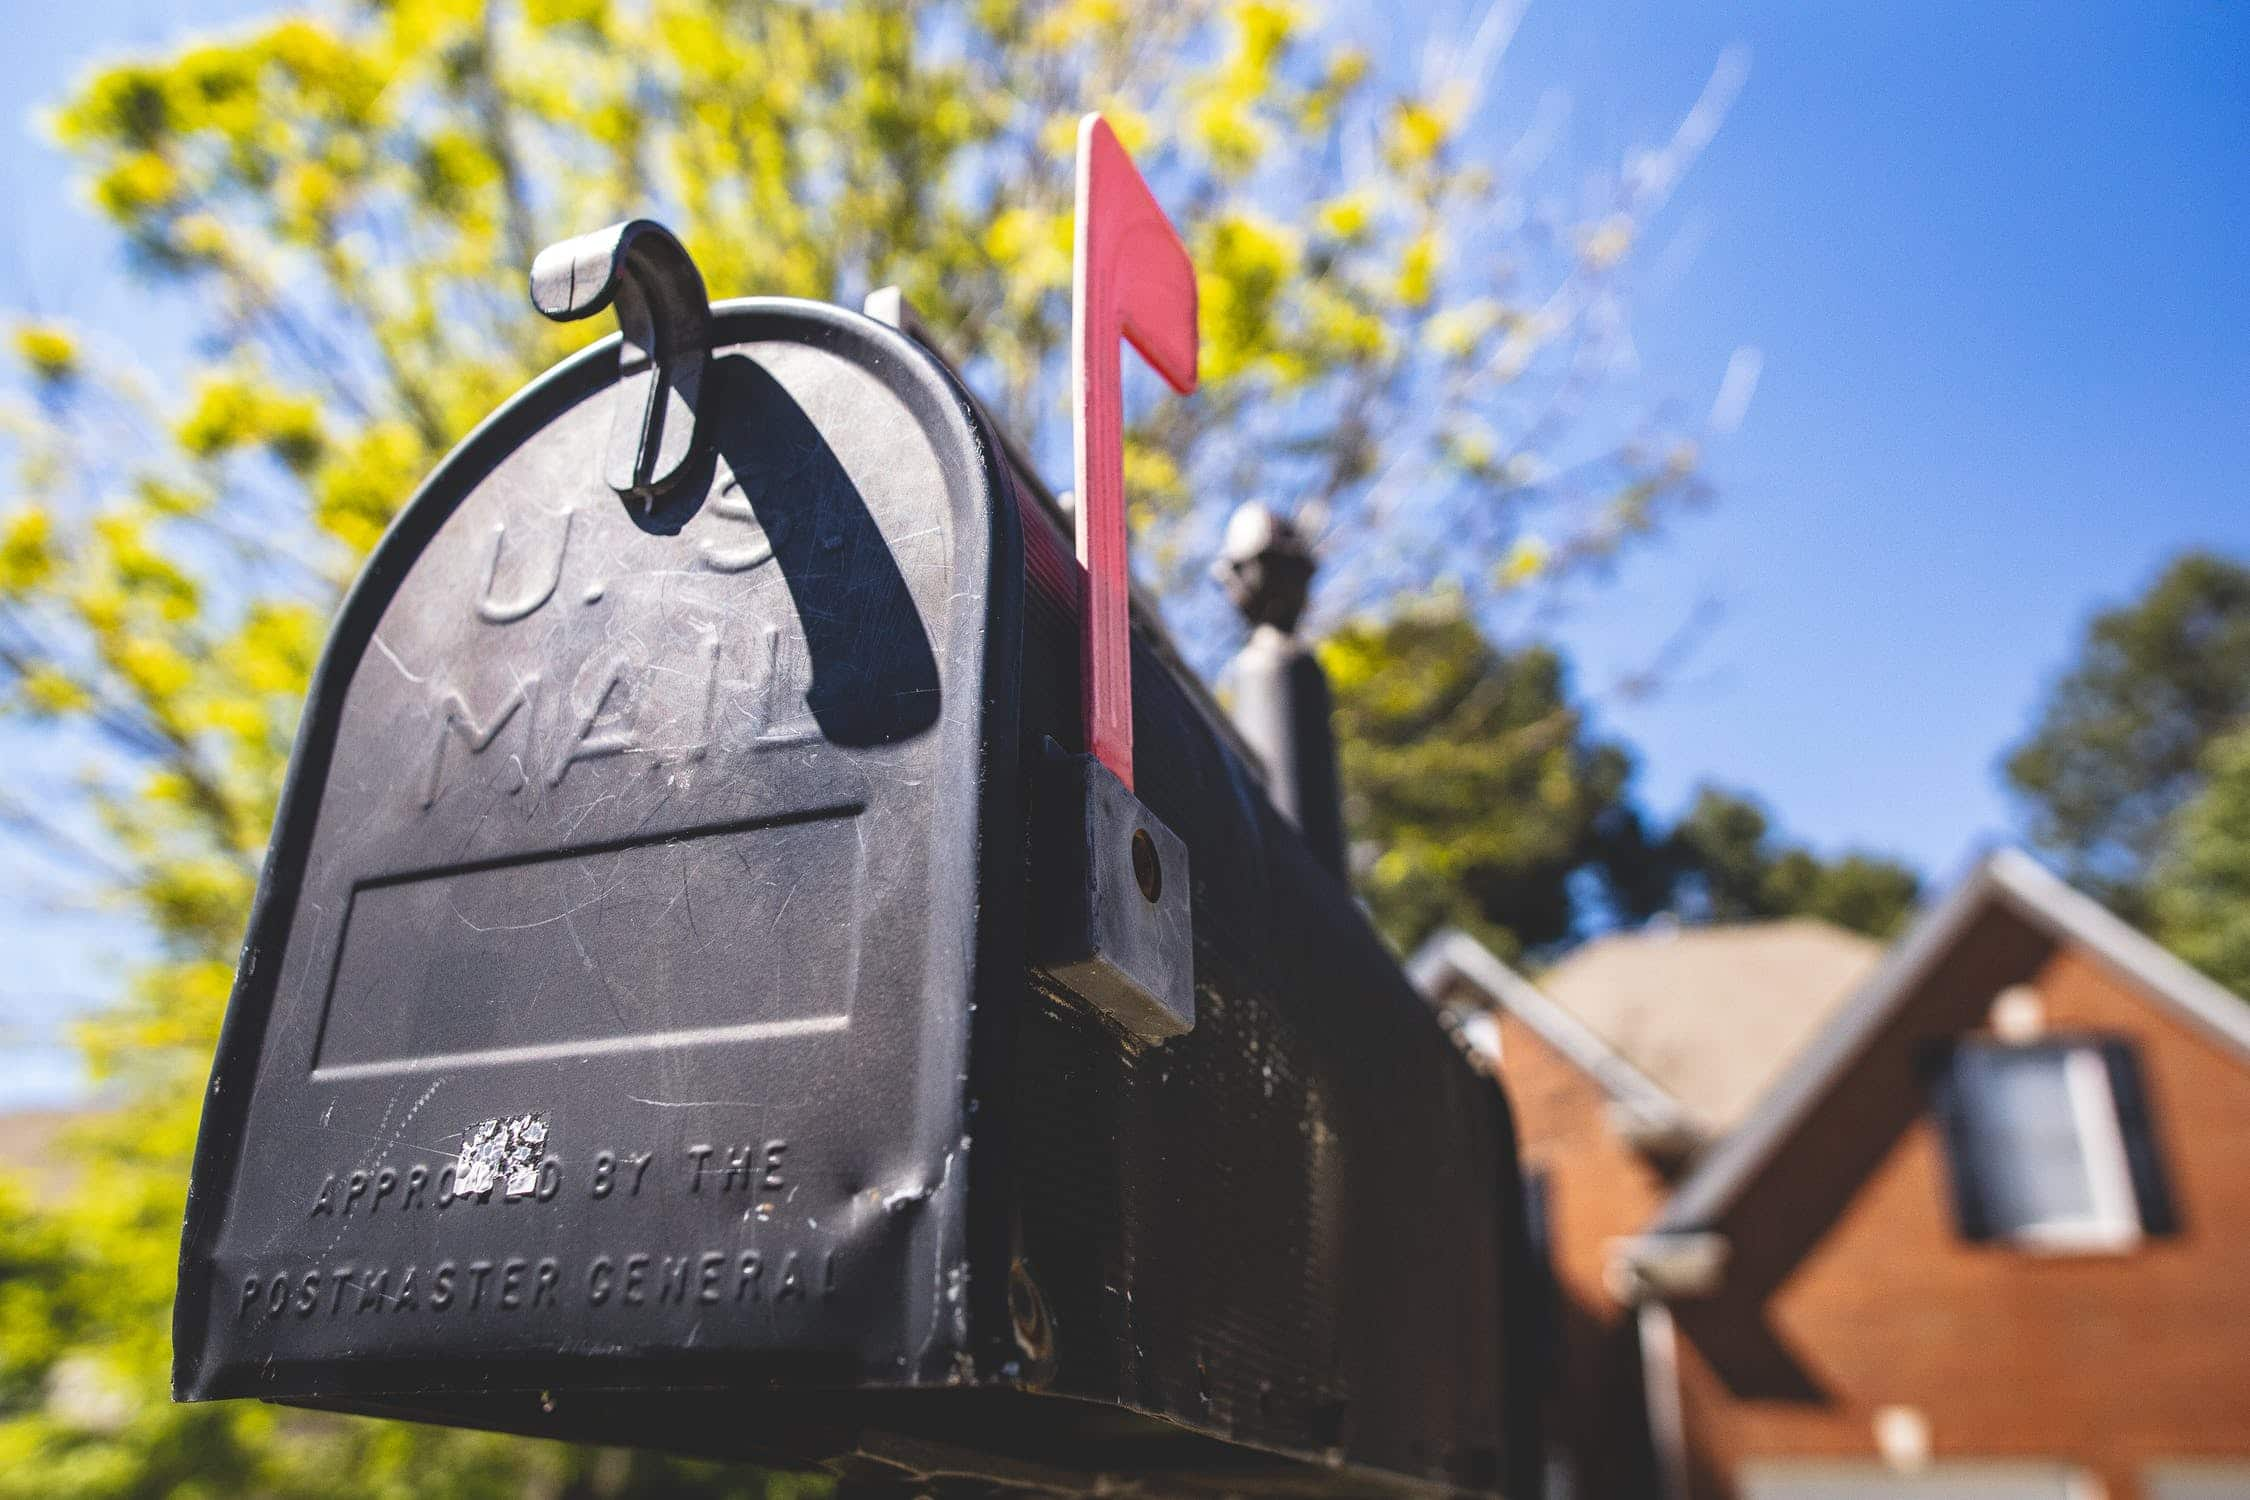 Relocating a Mailbox - Four Easy Steps for Moving Your Mailbox